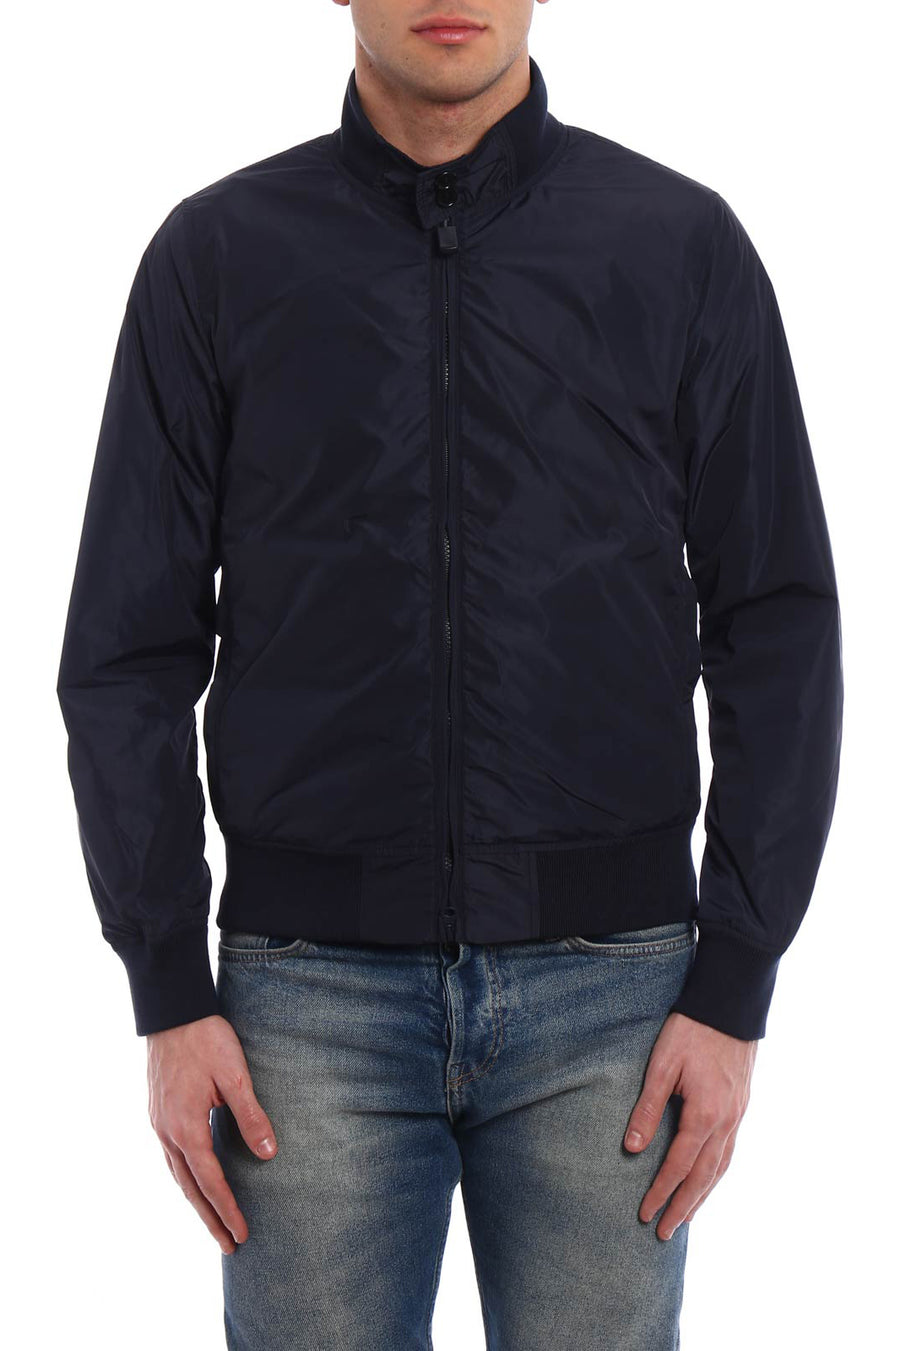 Swing Jacket - Black - Pavilion